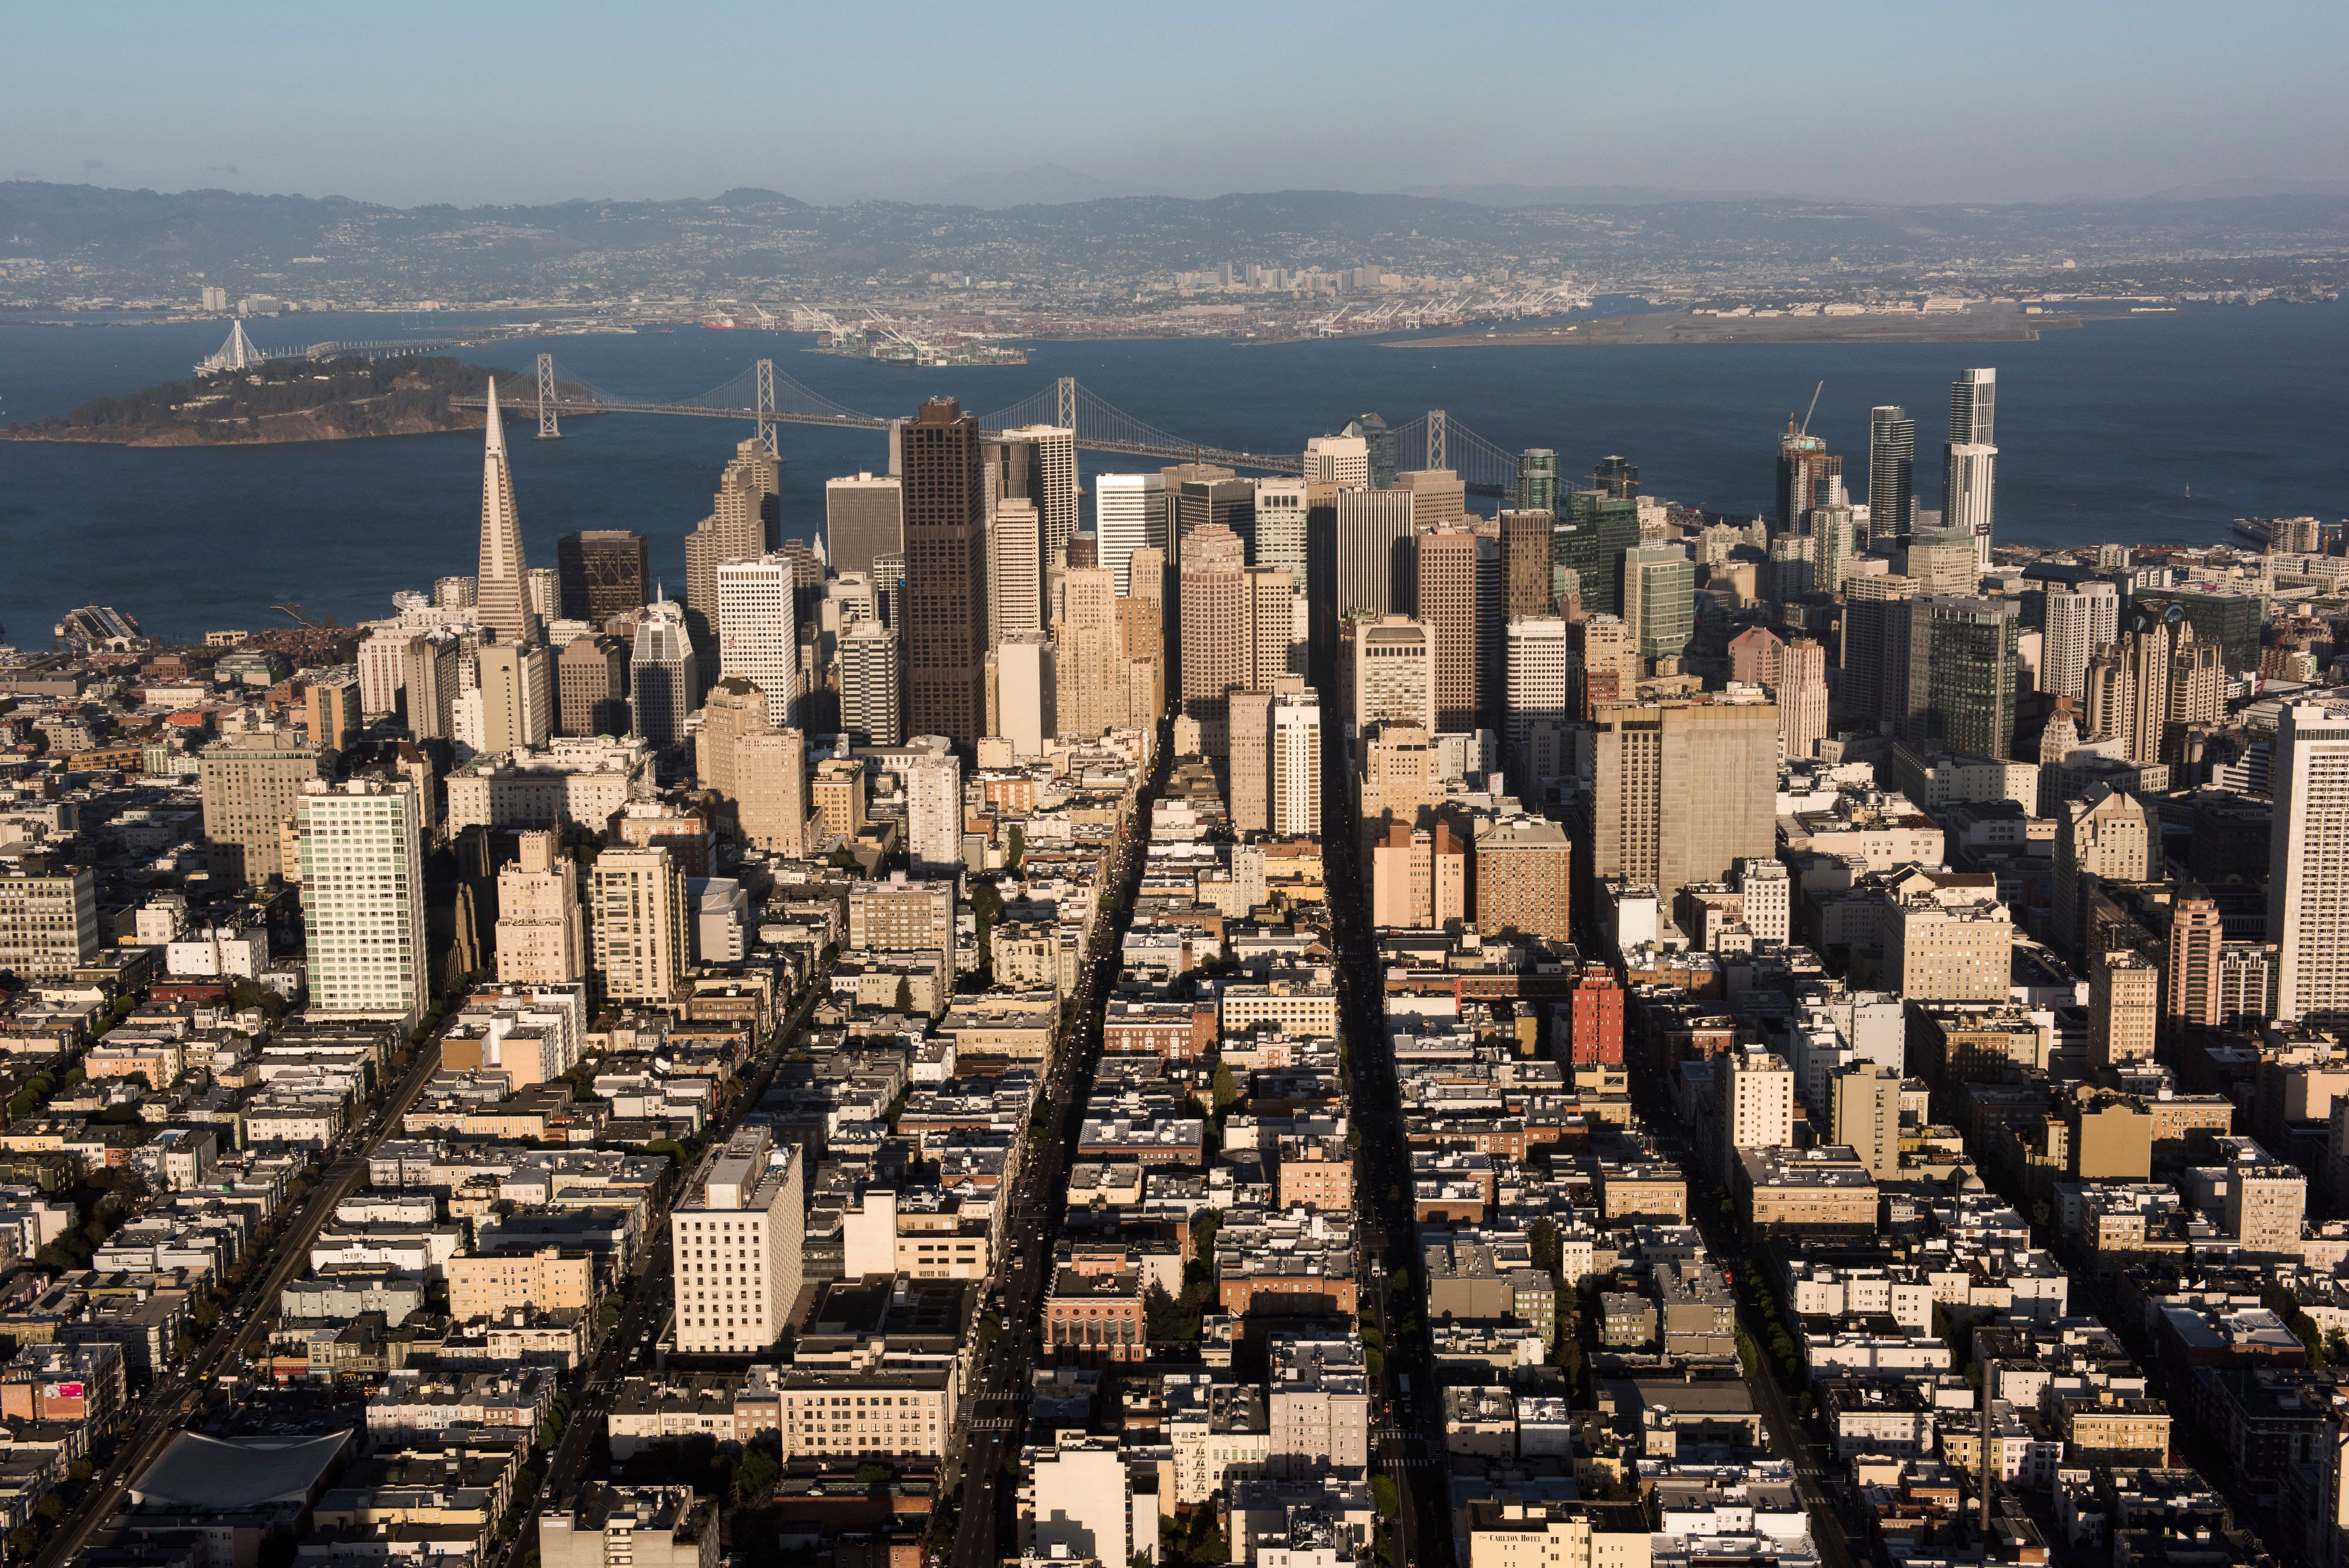 The Transamerica Pyramid building, left, stands in the skyline of downtown as the San Francisco-Oakland Bay Bridge crosses over Treasure Island in this aerial photograph taken above San Francisco, California, U.S., on Monday, Oct. 5, 2015. With tech workers flooding San Francisco, one-bedroom apartment rents have climbed to $3,500 a month, more than in any other U.S. city. Photographer: David Paul Morris/Bloomberg via Getty Images